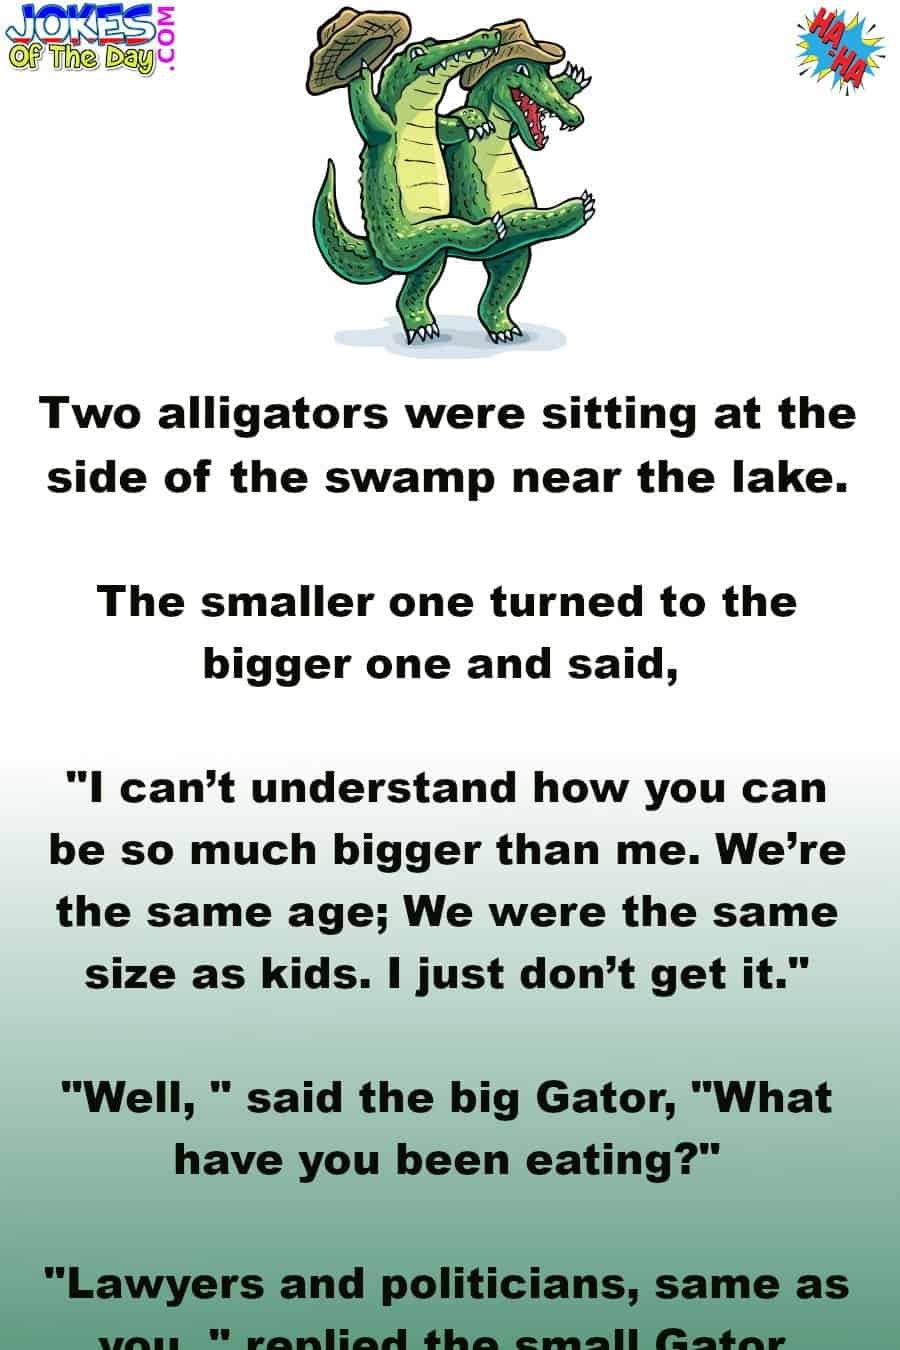 Joke - The big alligator explains why his companion is much smaller